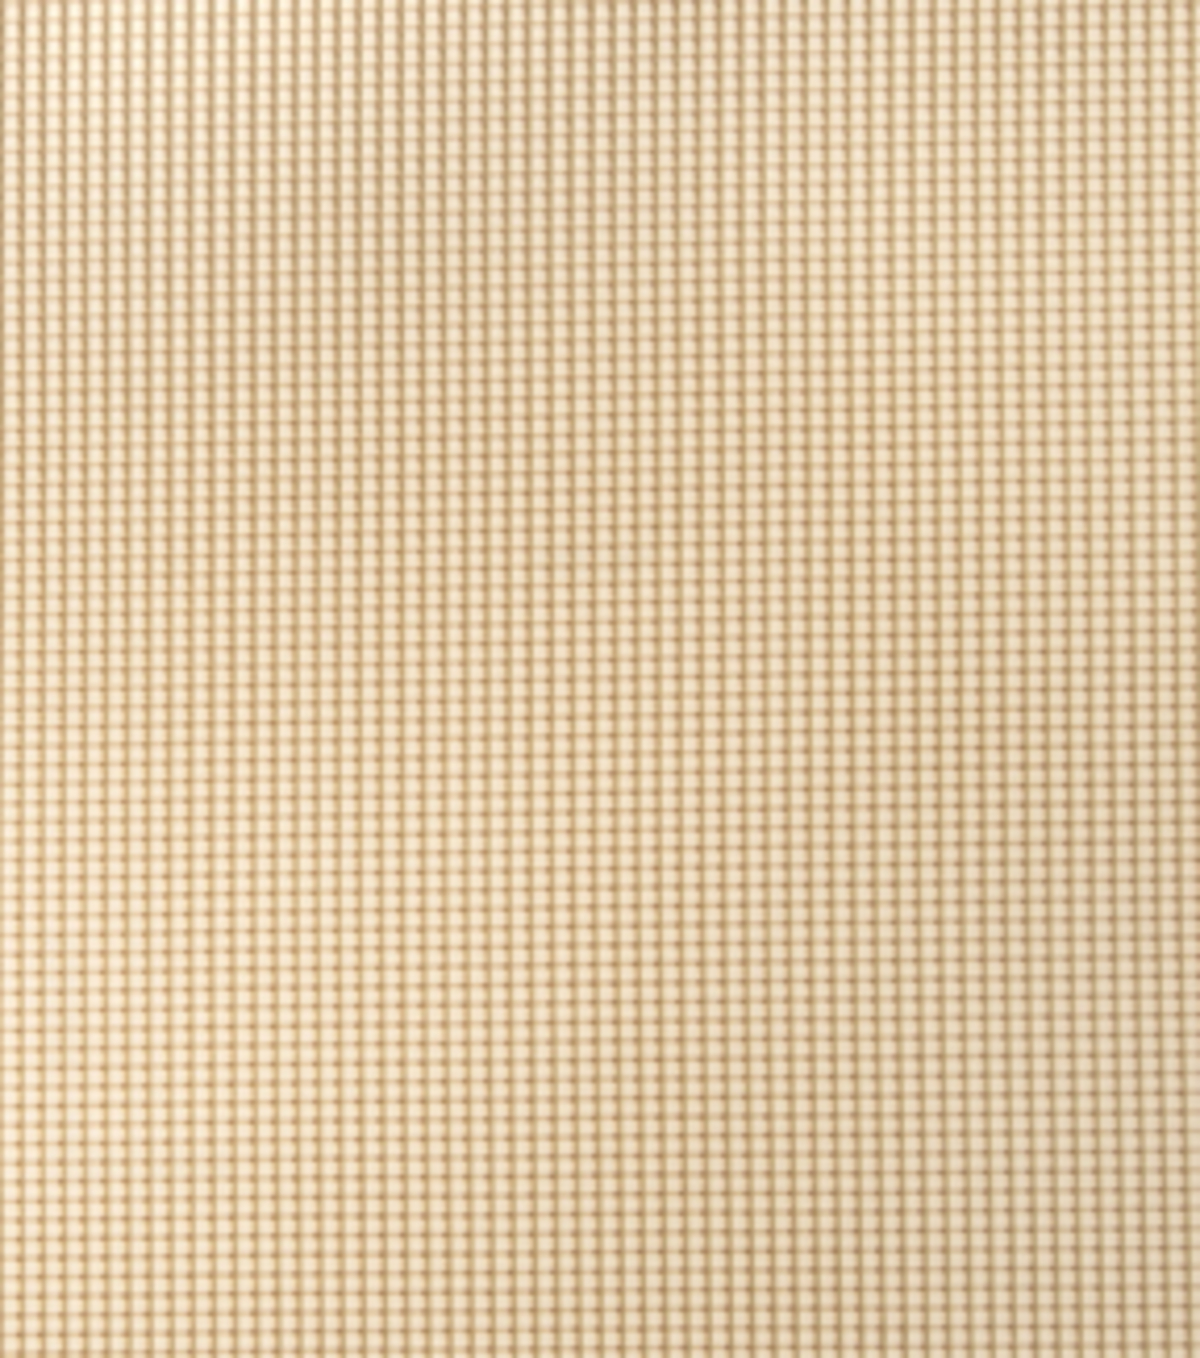 Home Decor 8\u0022x8\u0022 Fabric Swatch-SMC Designs Croft / Honey Suckle-Jcp